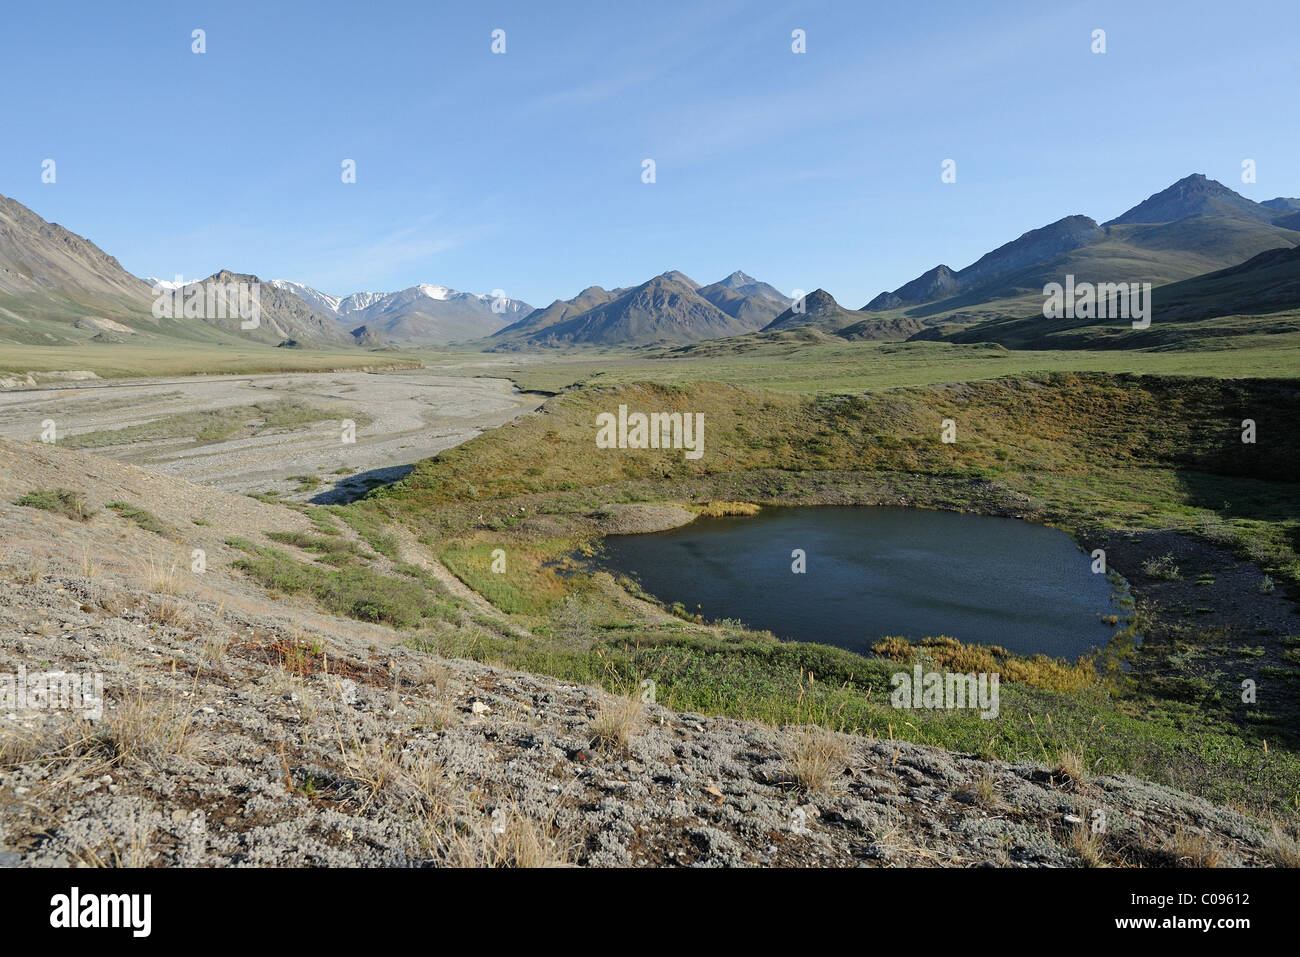 View of the Hulahula River near its source in the Brooks Range, ANWR, Arctic Alaska, Summer - Stock Image